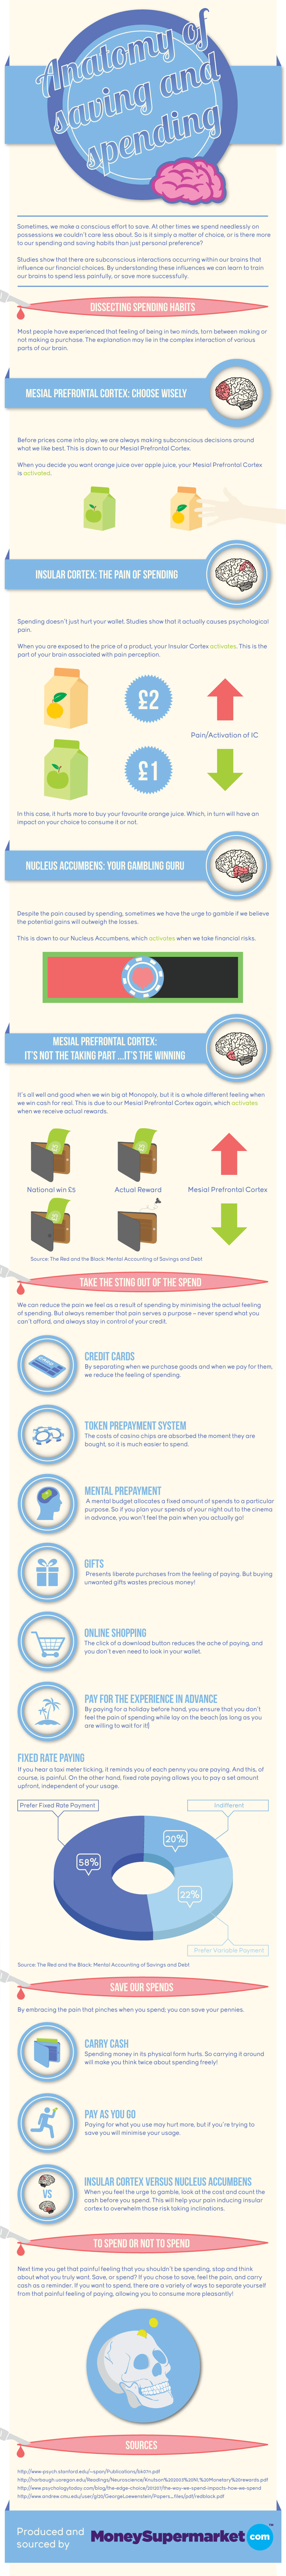 The Anatomy of Saving and Spending